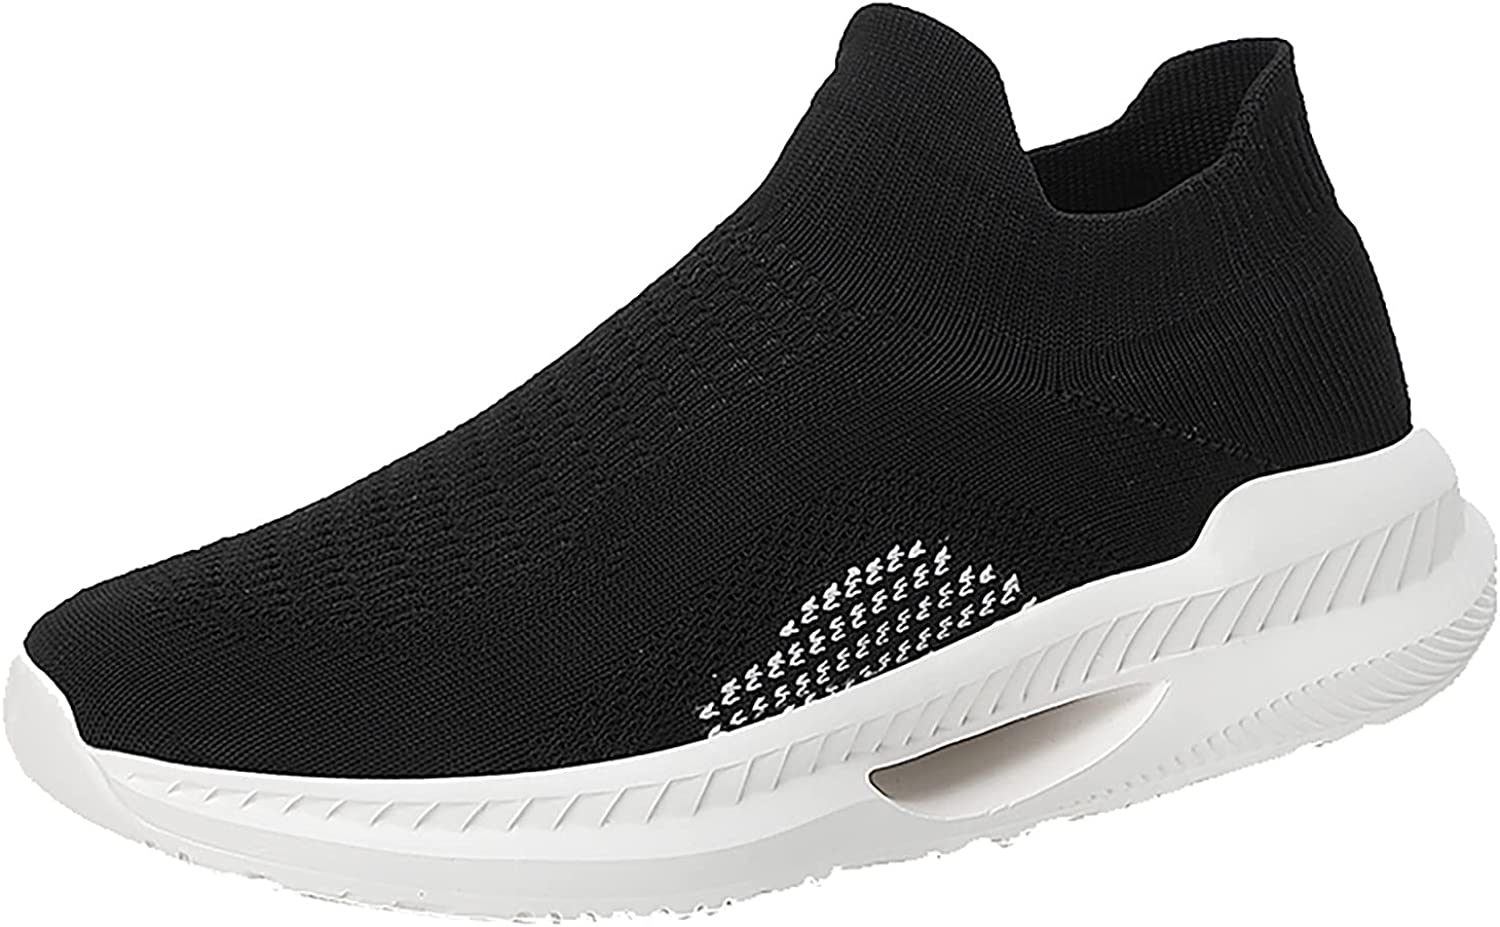 DKBL Women's Mesh Sneakers Hollow Out Walking Shoes Slip On Sports Fitness Shoes Breathable Lightweight Shoes Fashion Running Shoes Flat Street Running Shoes Sneakers